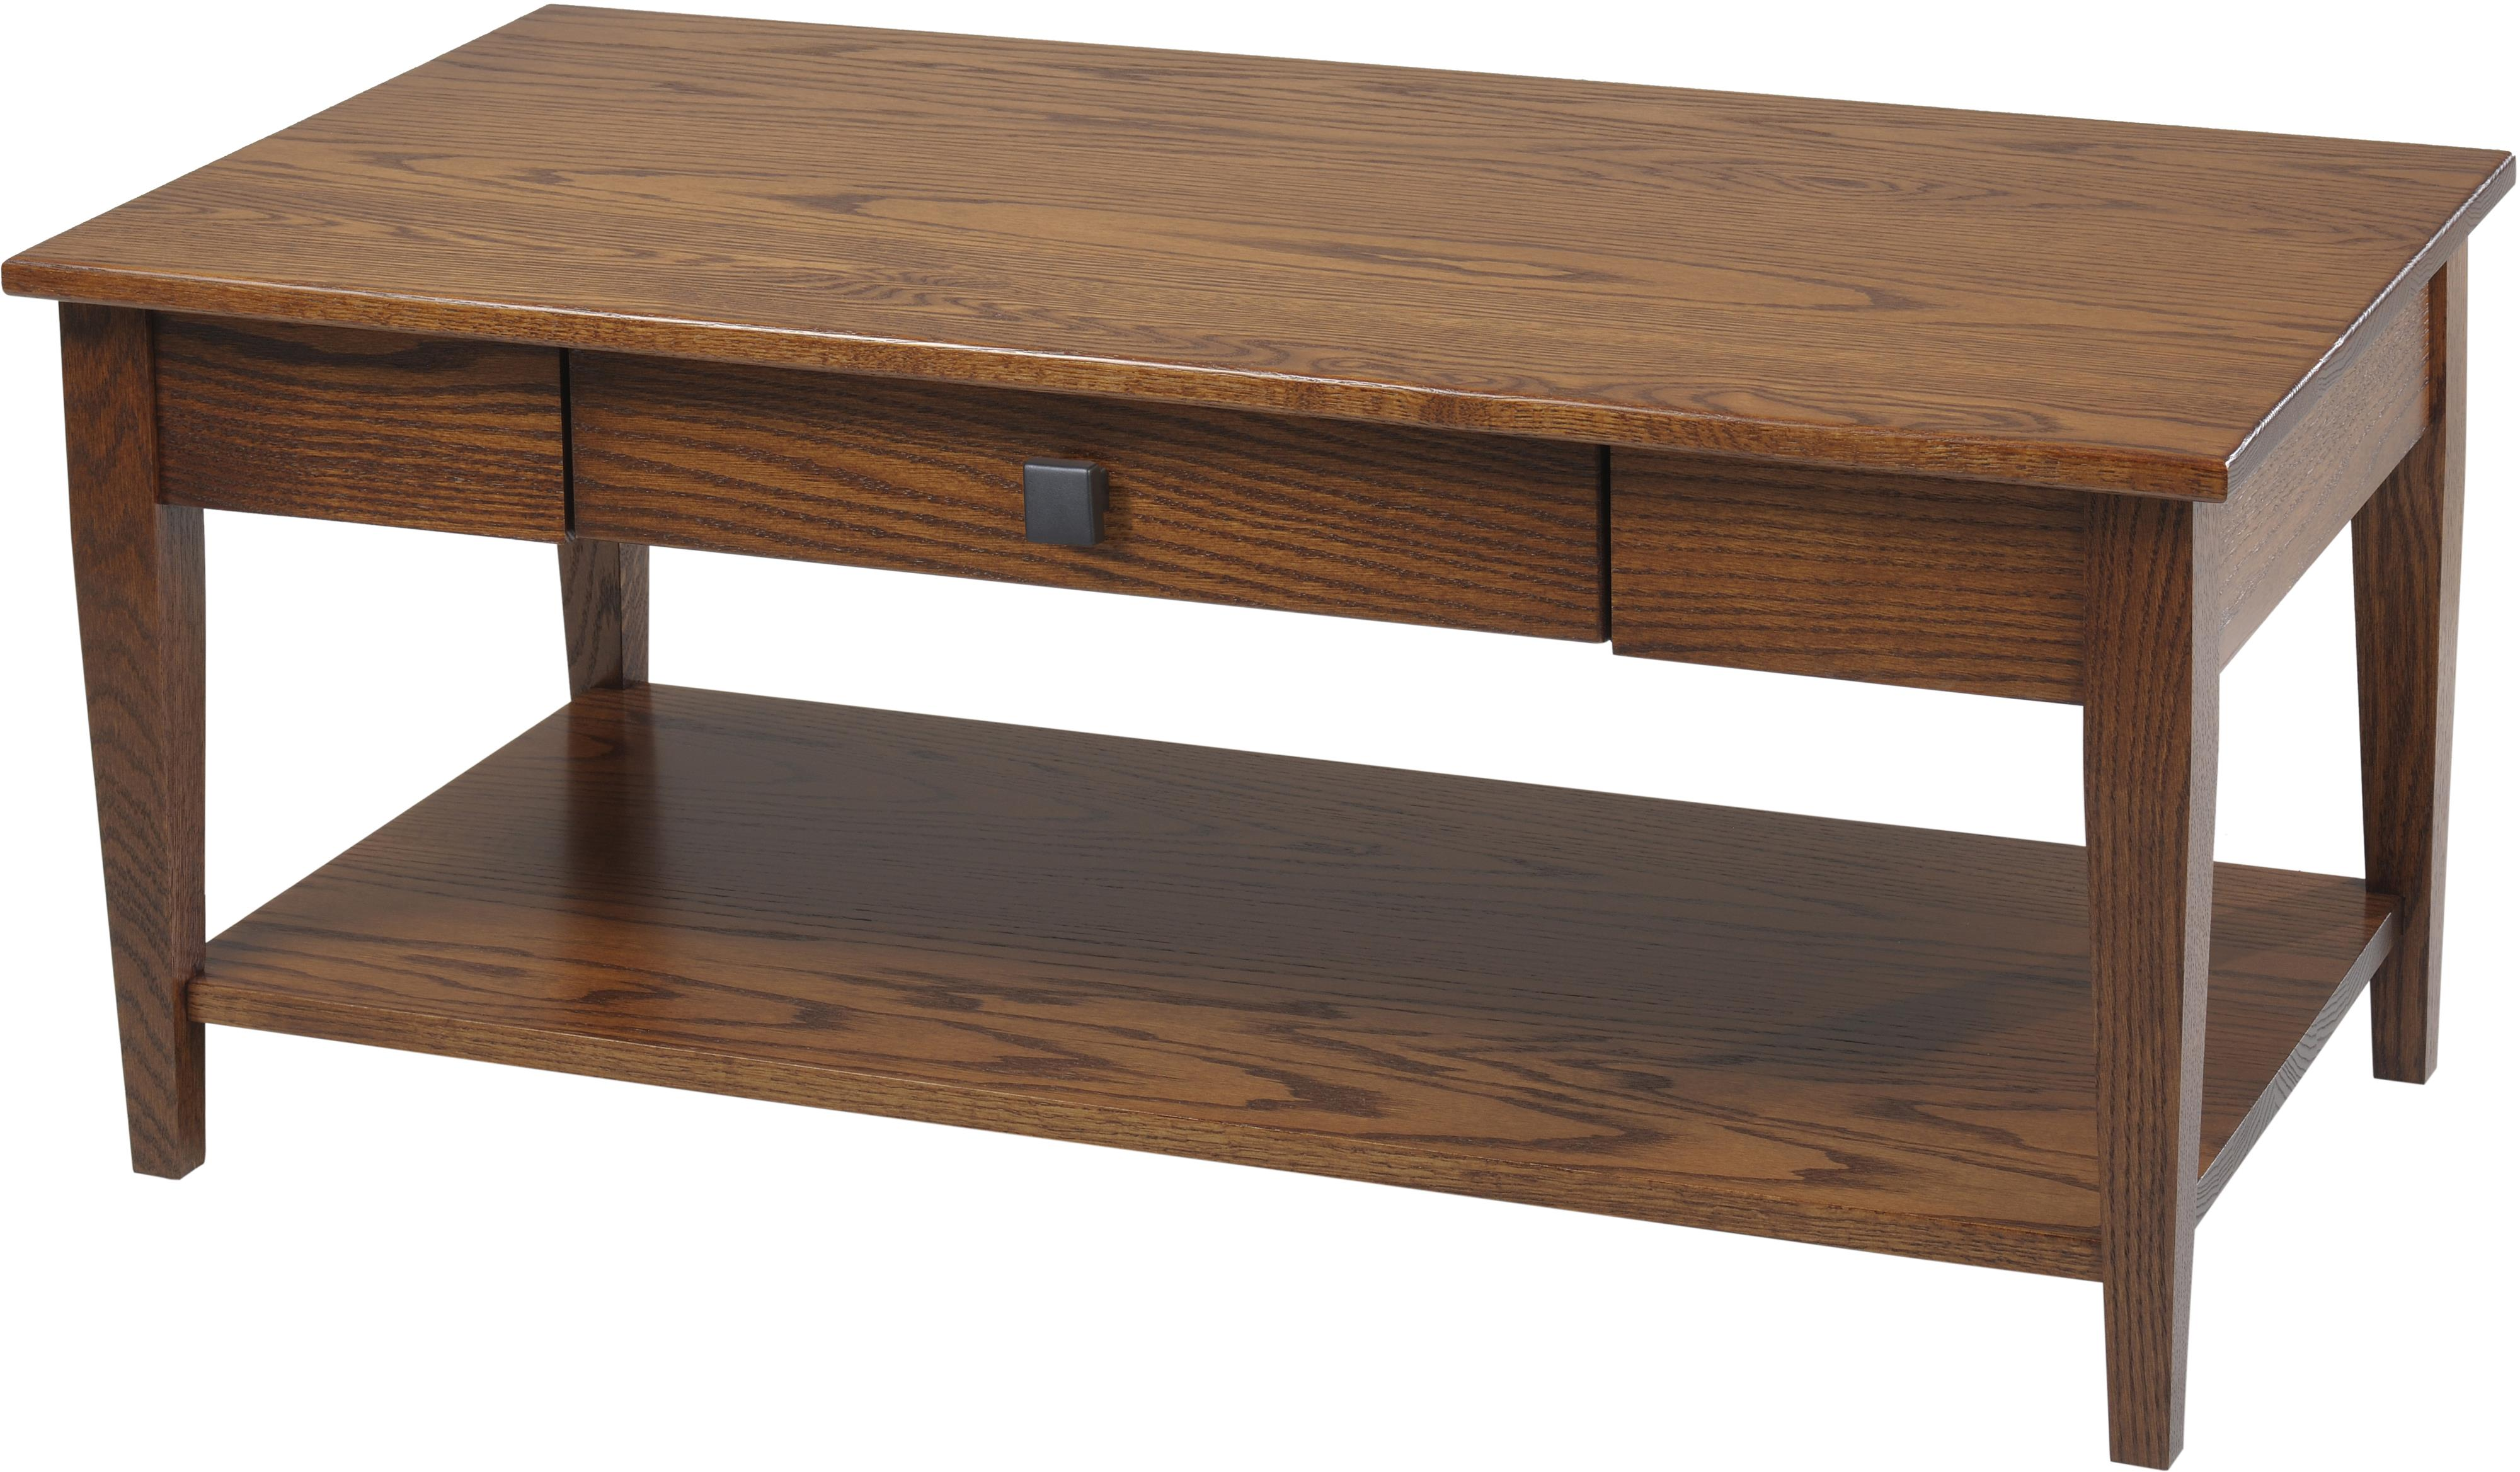 Woodland Shaker Coffee Table with Shelf by Y & T Woodcraft at Saugerties Furniture Mart